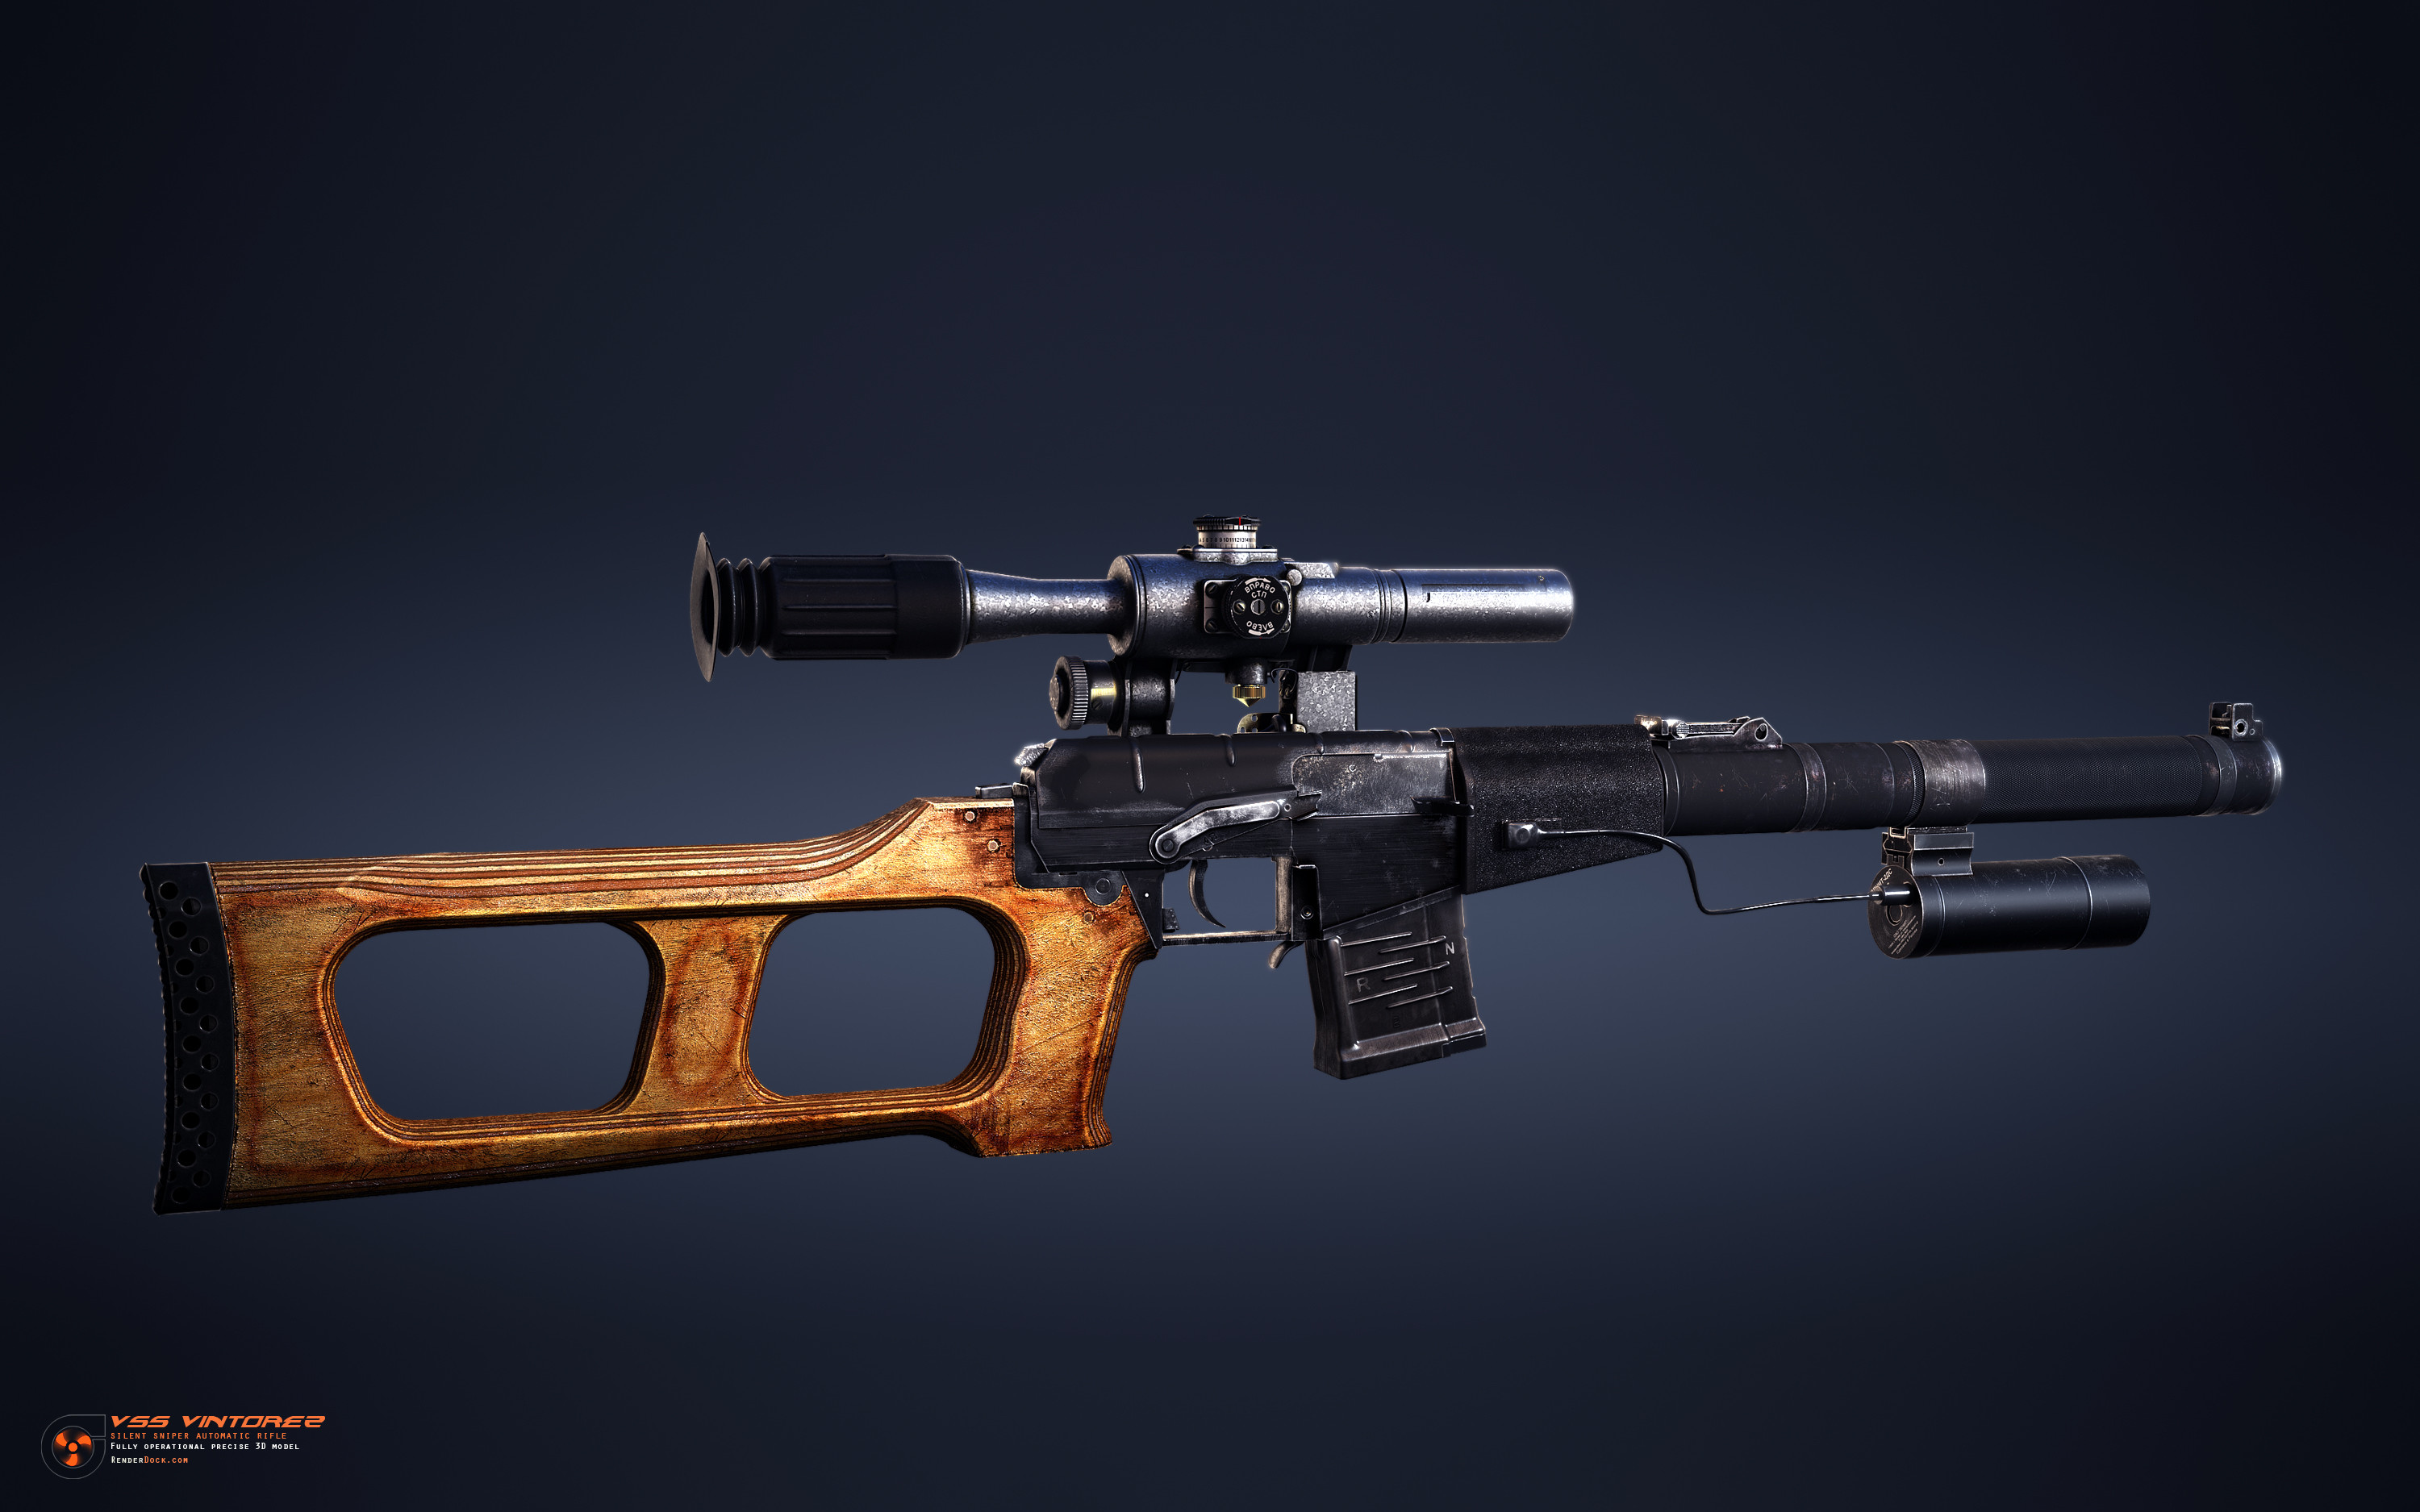 Rifle was designed for special forces operations